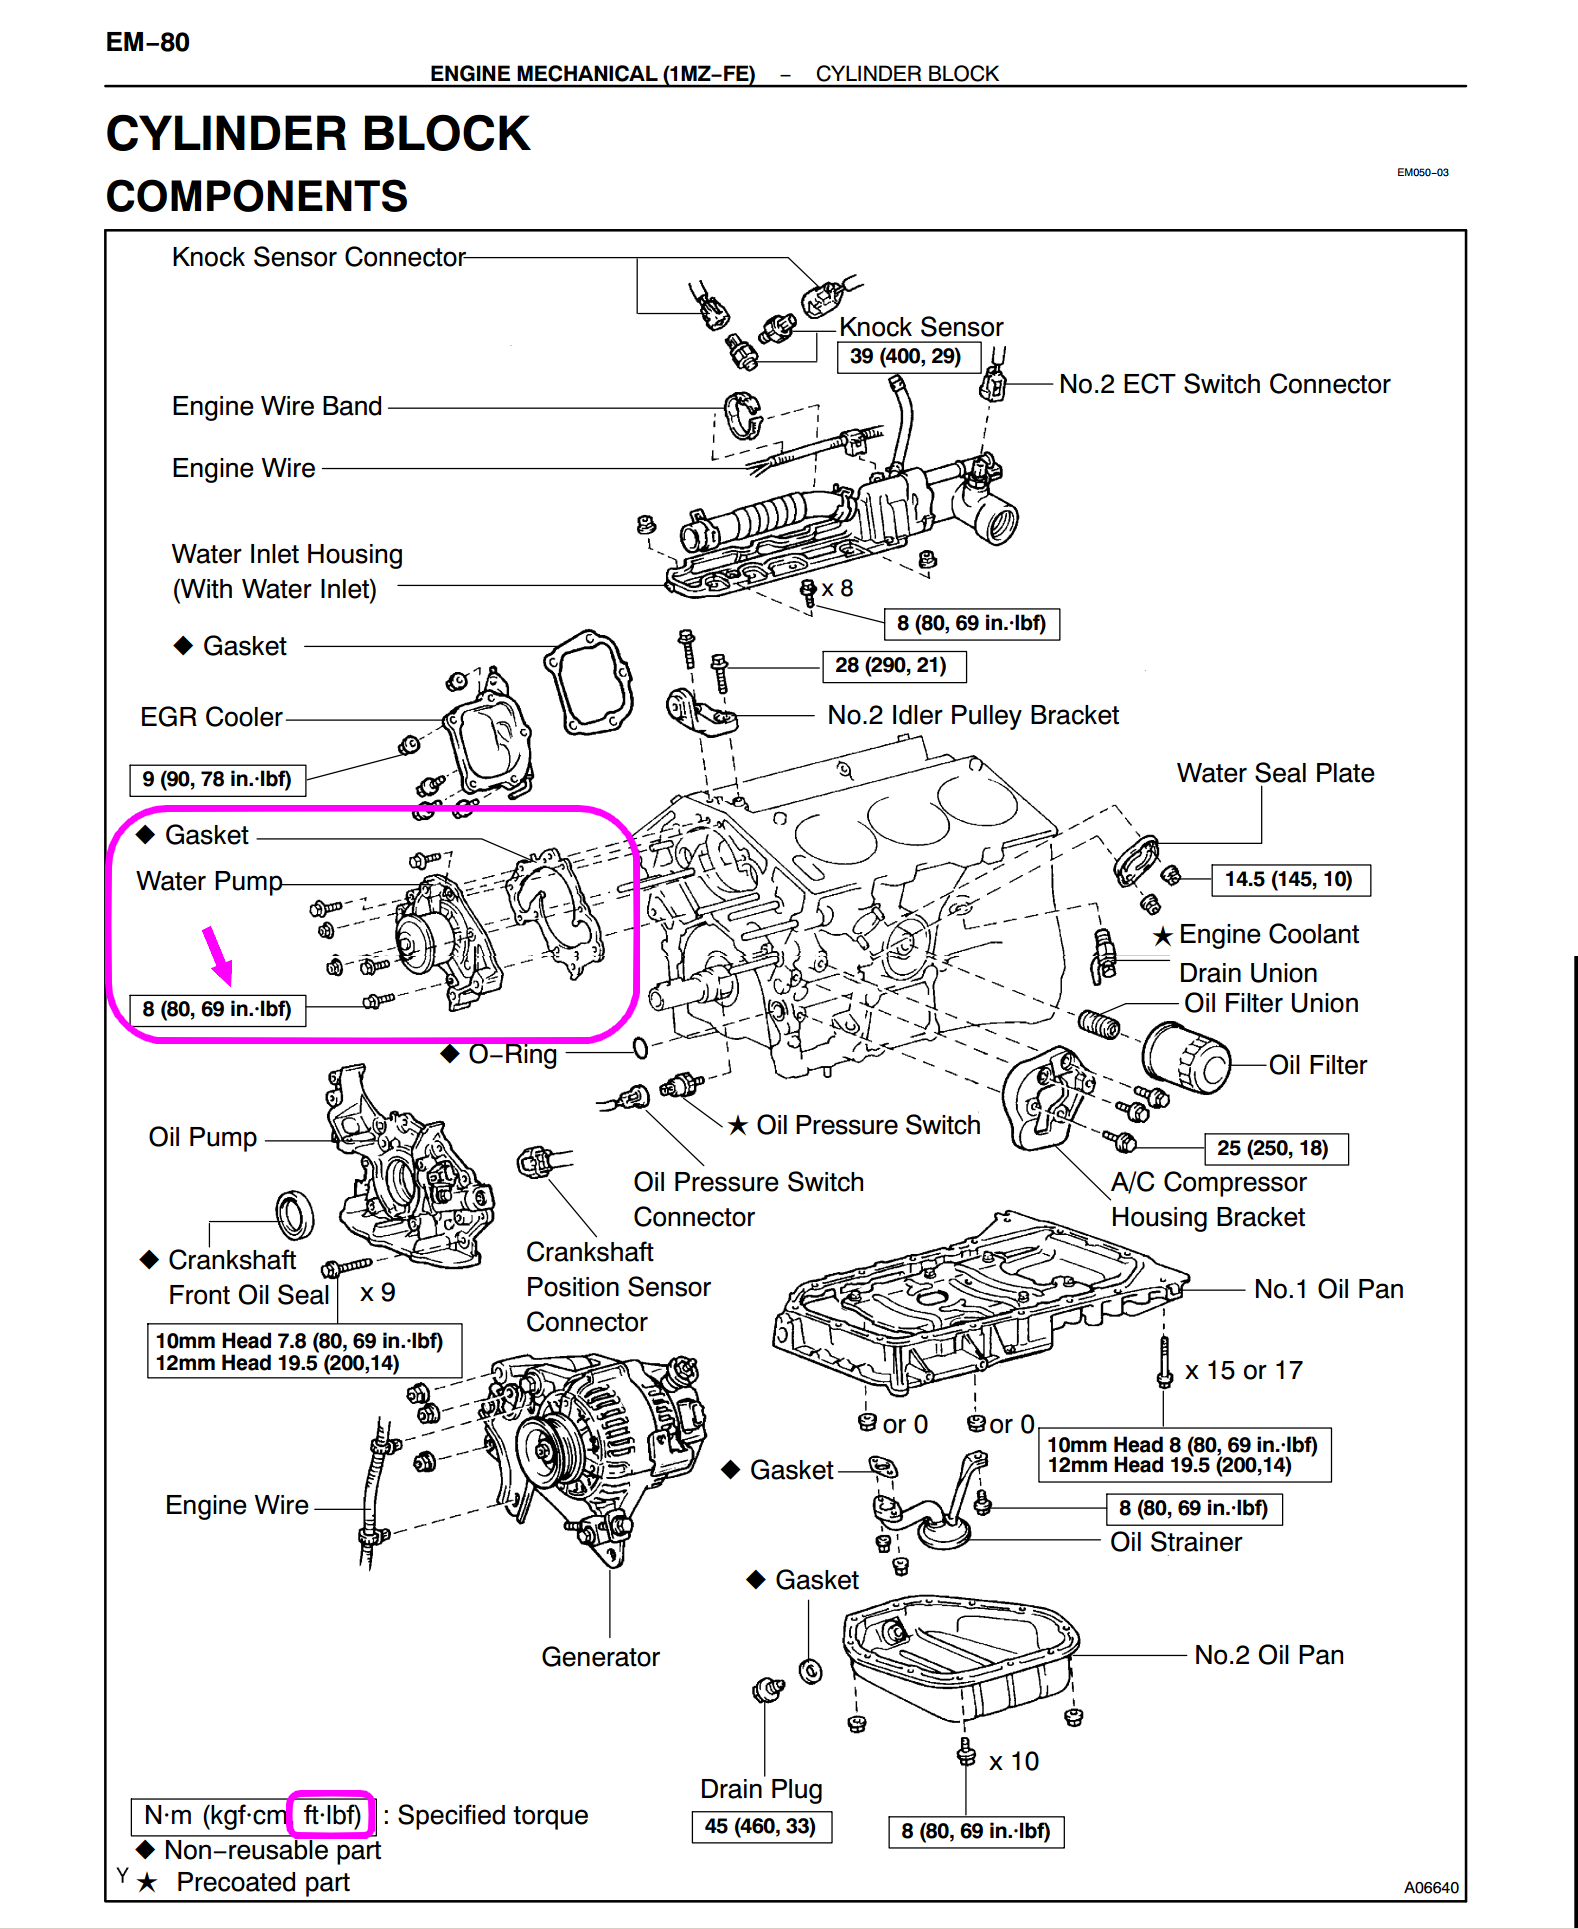 98 Toyota Camry Engine Diagram Torque Wiring Diagram Cloud A Cloud A Reteimpresesabina It